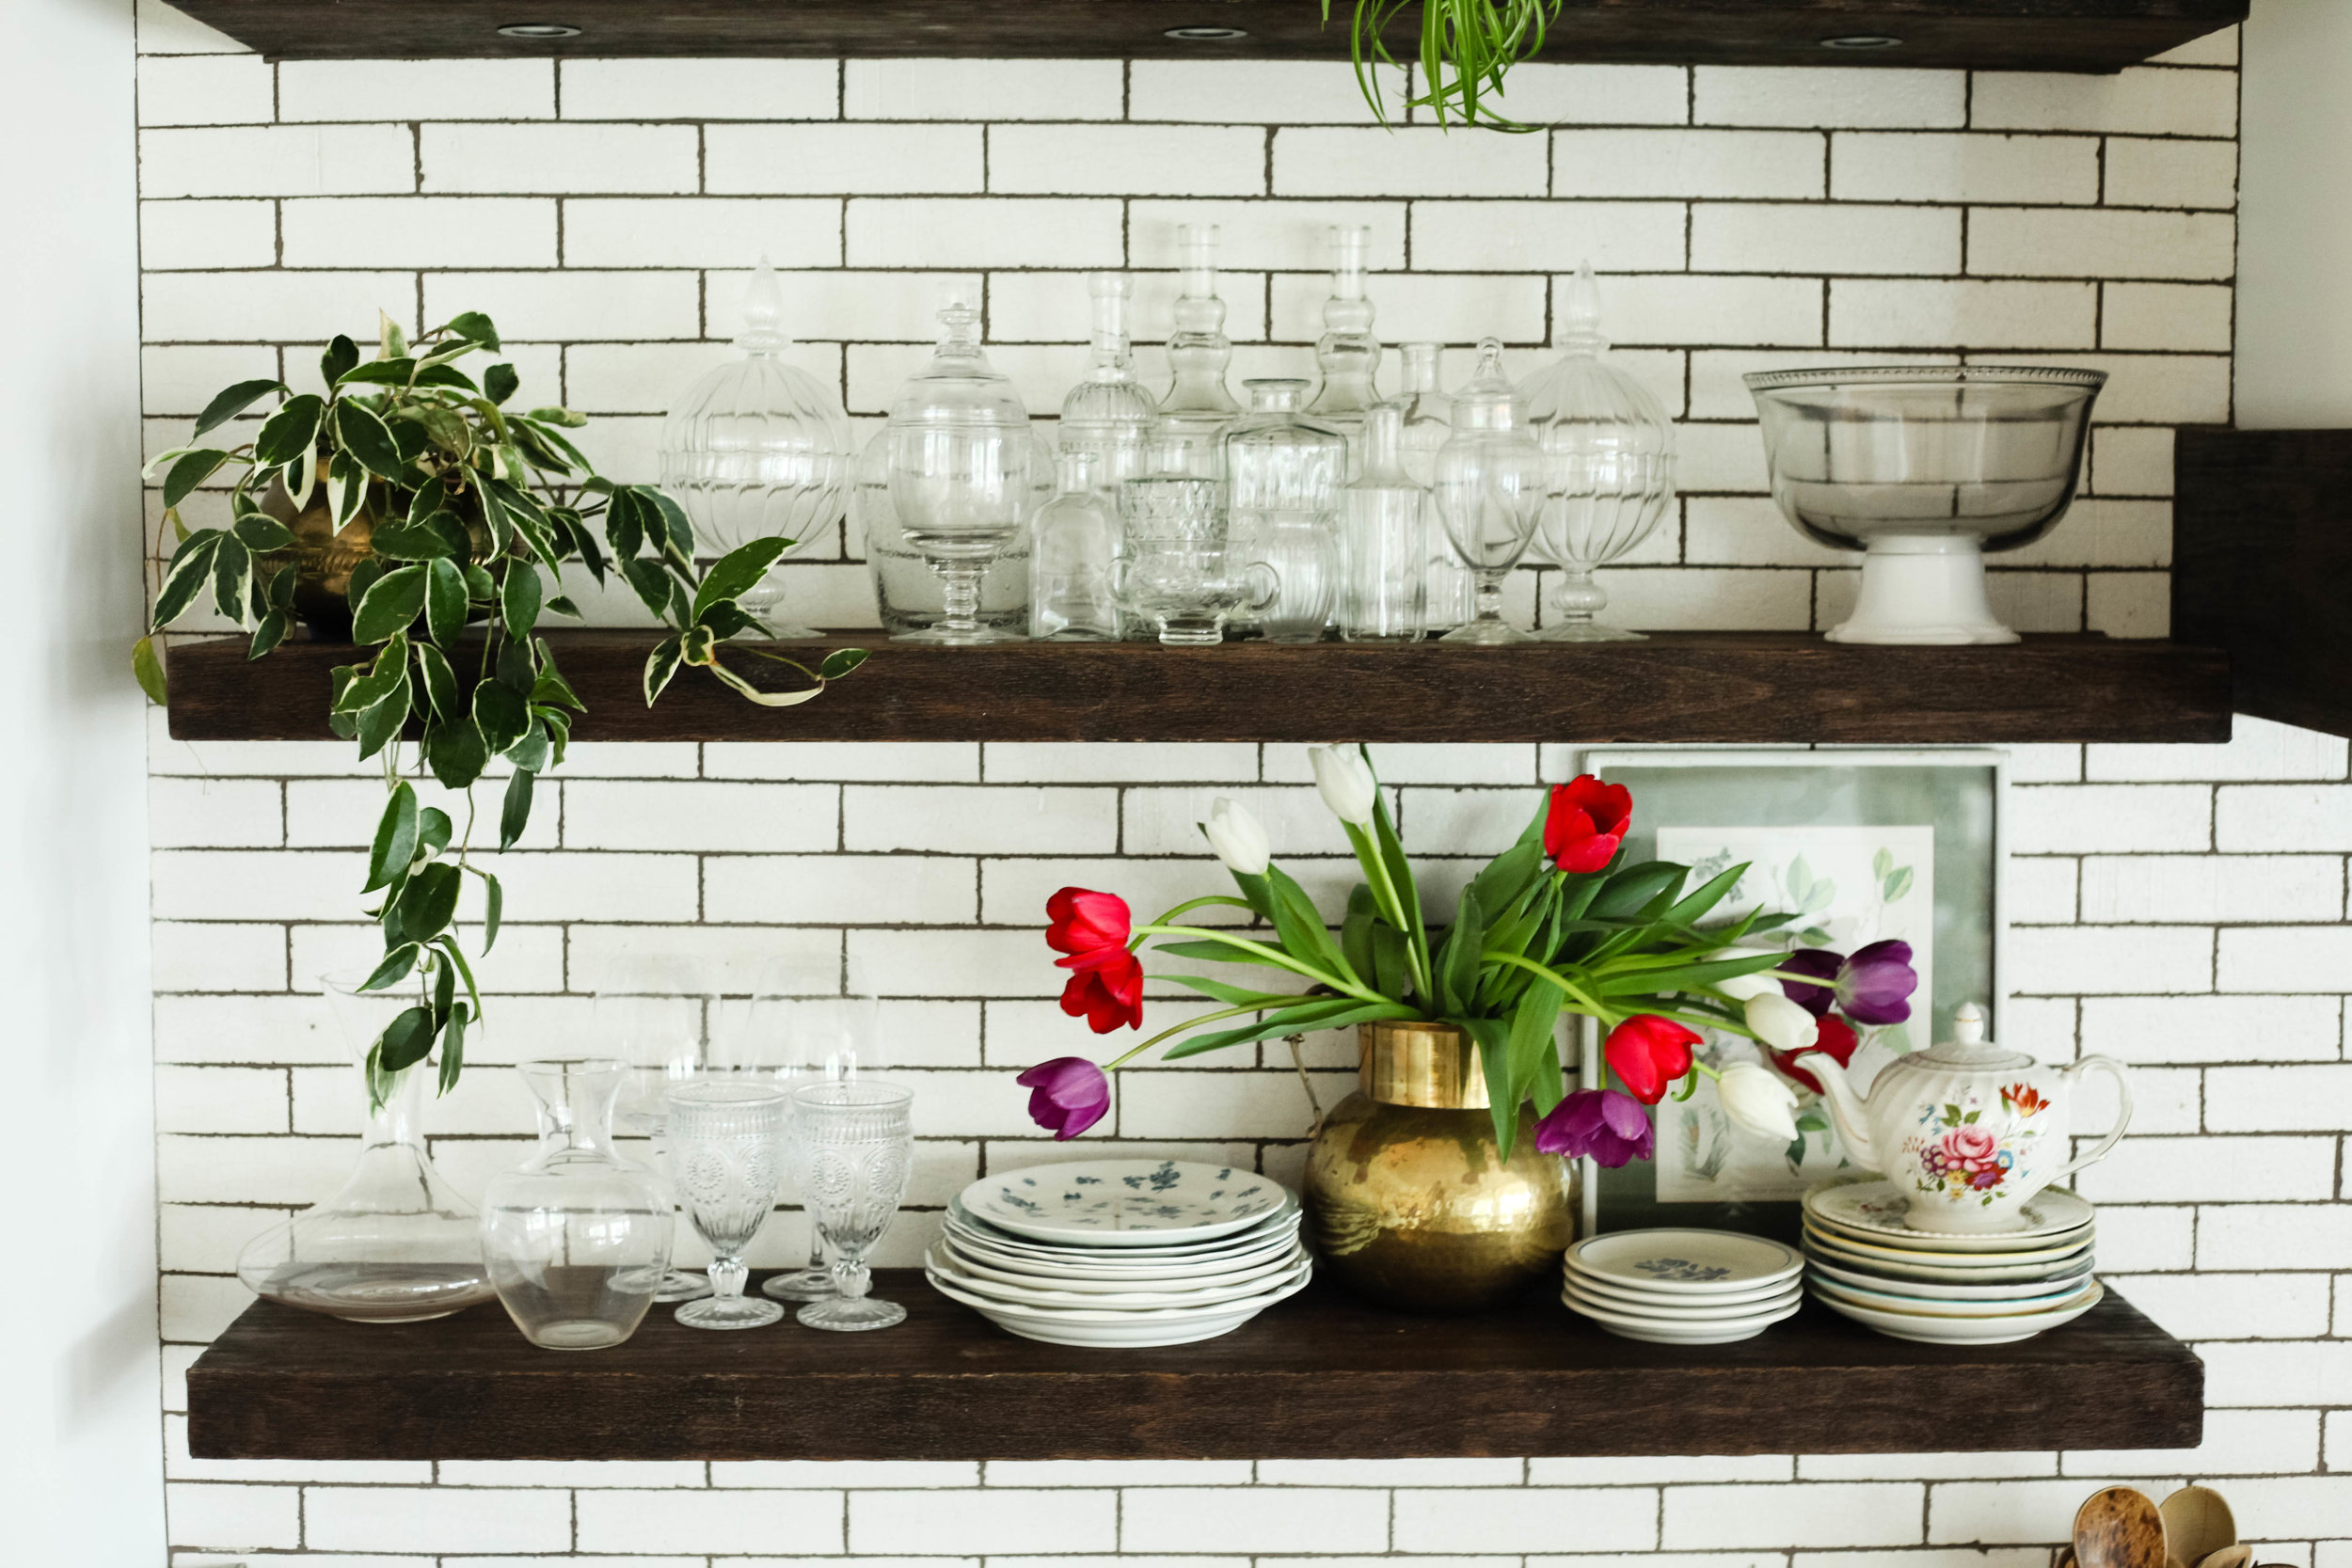 Style tip: hanging plants look intriguing next to a collection of vintage glass vases & bottles.  Style tip: Fresh flowers in a brass pot adds color and freshness to any shelf!